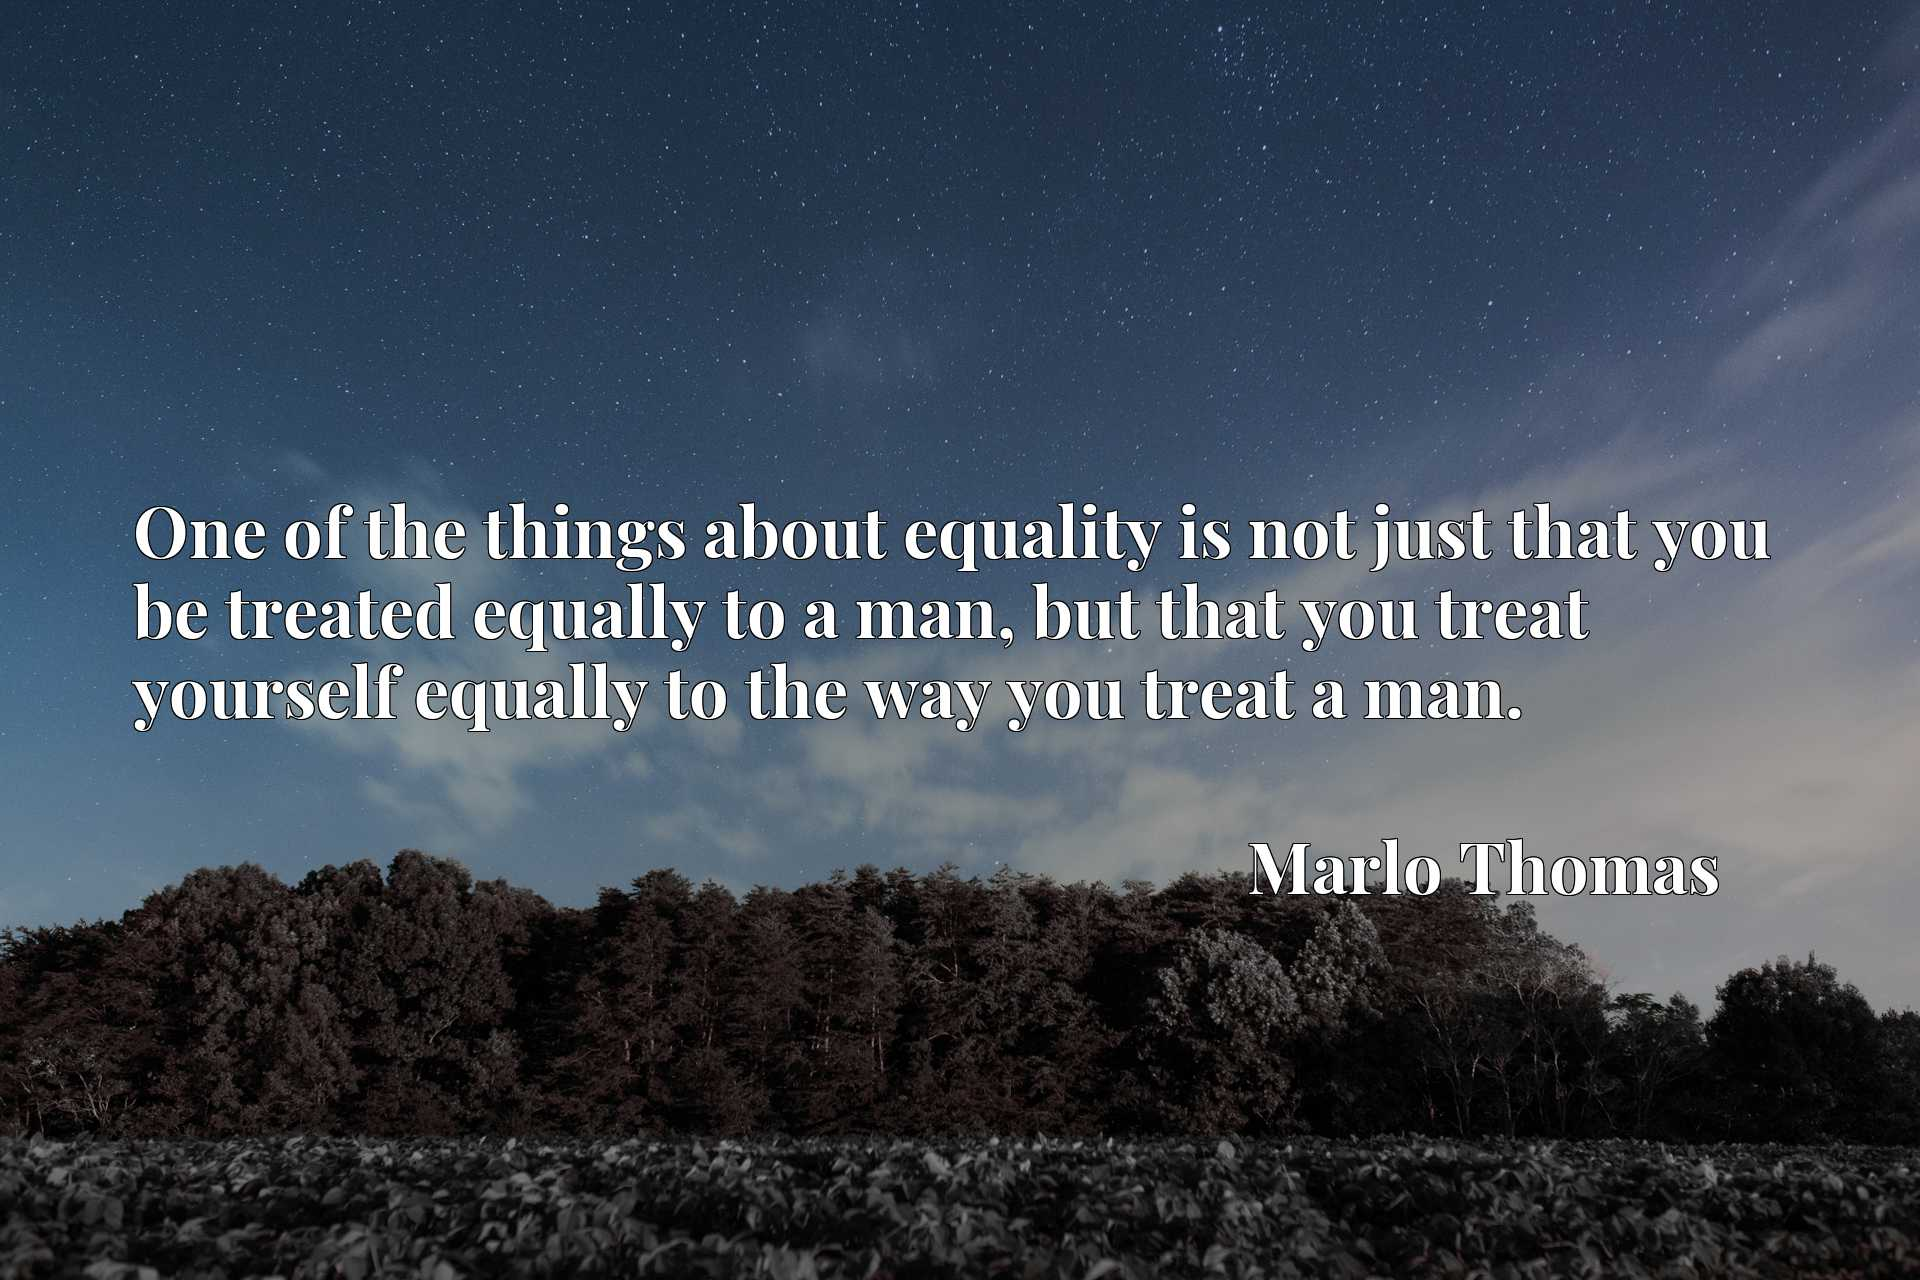 One of the things about equality is not just that you be treated equally to a man, but that you treat yourself equally to the way you treat a man.